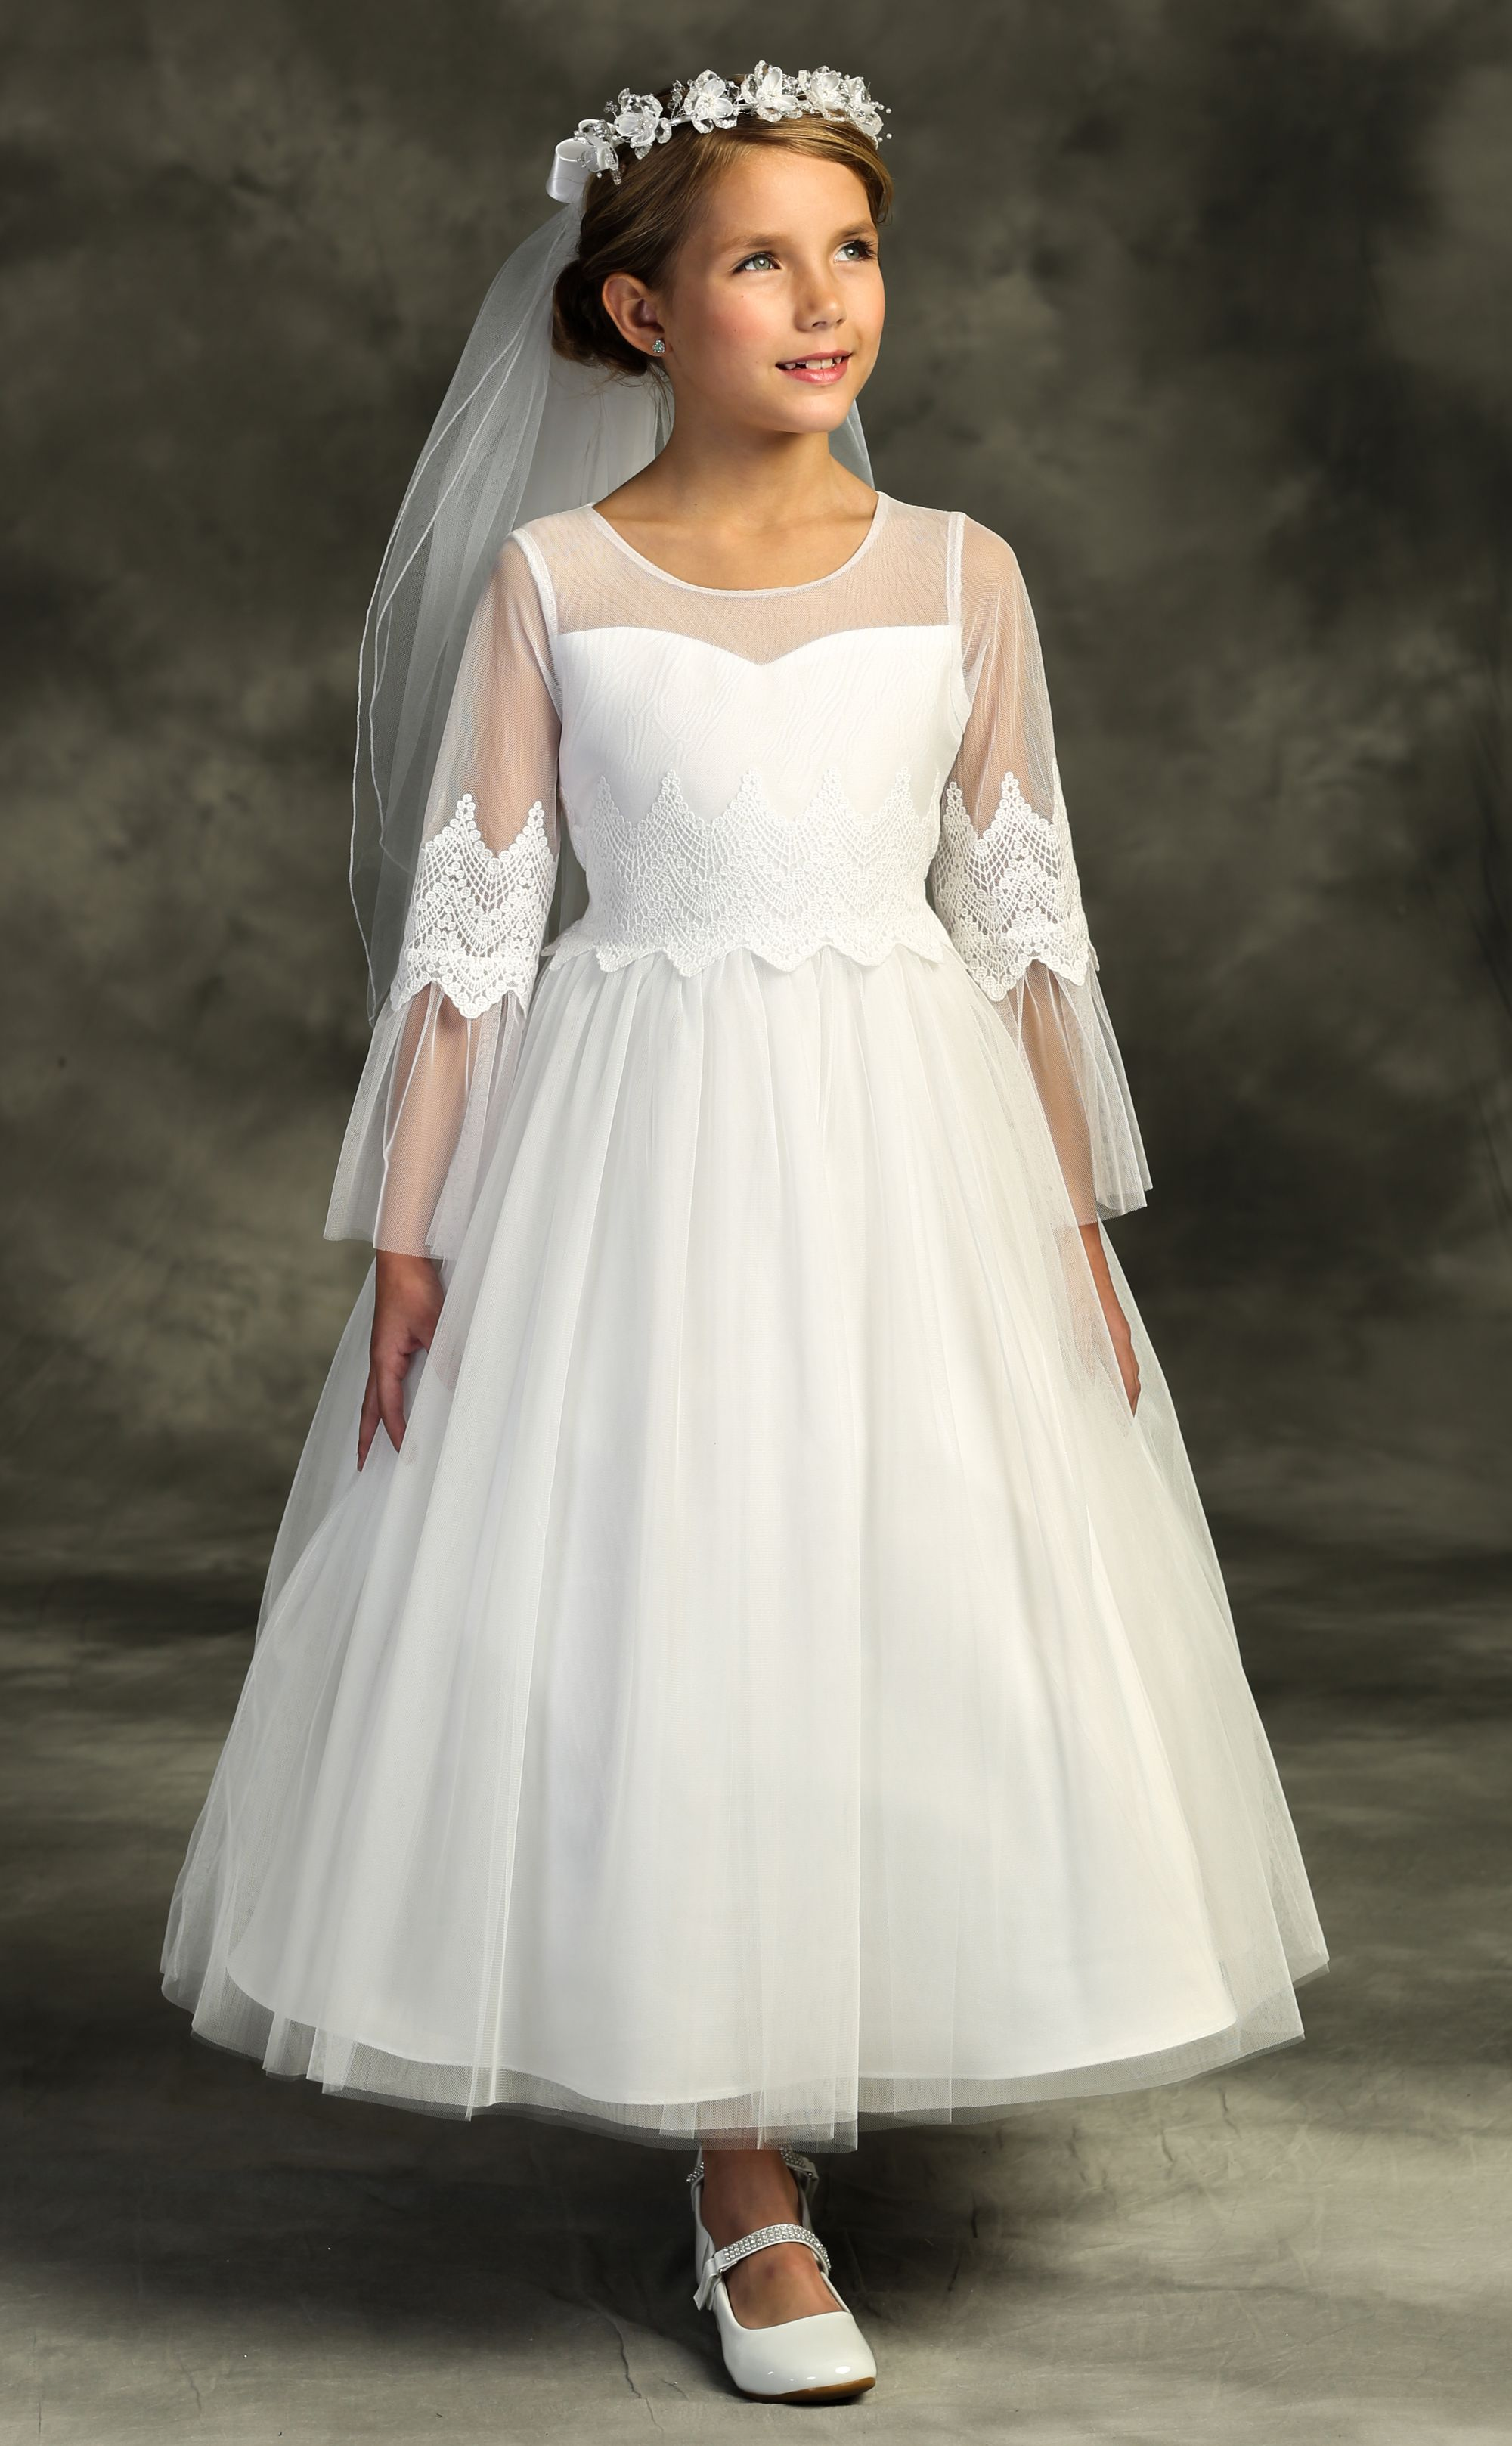 girl wearing white communion dress with veil